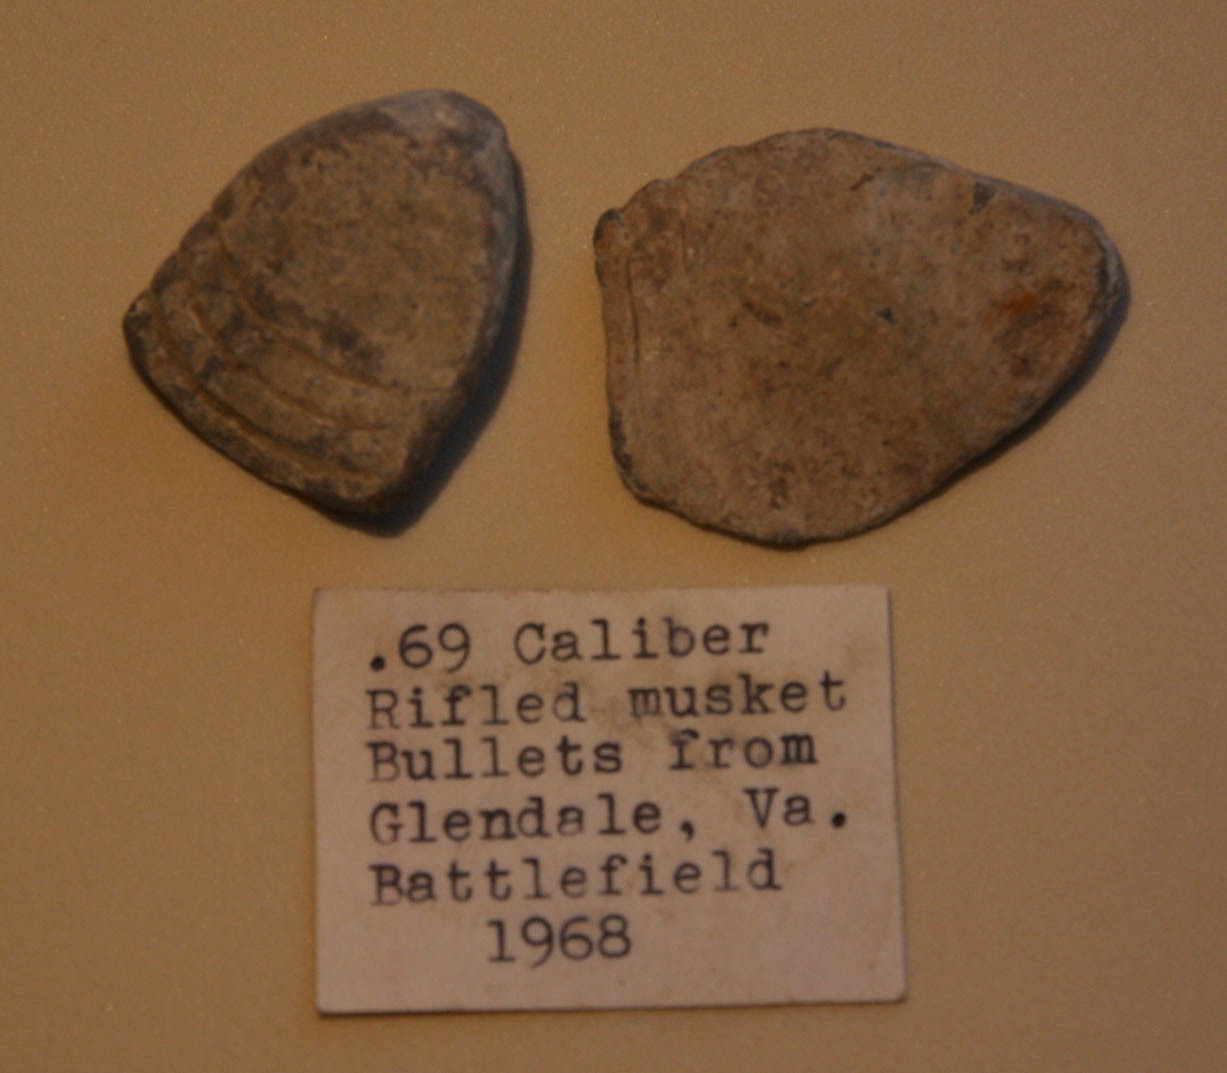 JUST ADDED ON 10/13 - THE BATTLE OF GLENDALE - 2 .69 Caliber Bullets - Found in 1968 - with ORIGINAL COLLECTION LABEL RG-GL01